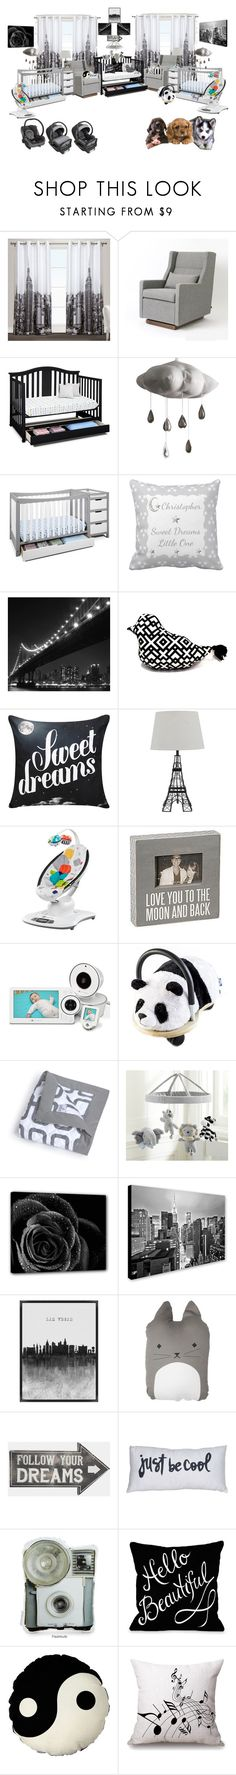 """basic nursery"" by angelika-andrades ❤ liked on Polyvore featuring interior, interiors, interior design, home, home decor, interior decorating, Exclusive Home, Gus* Modern, Graco and WALL"